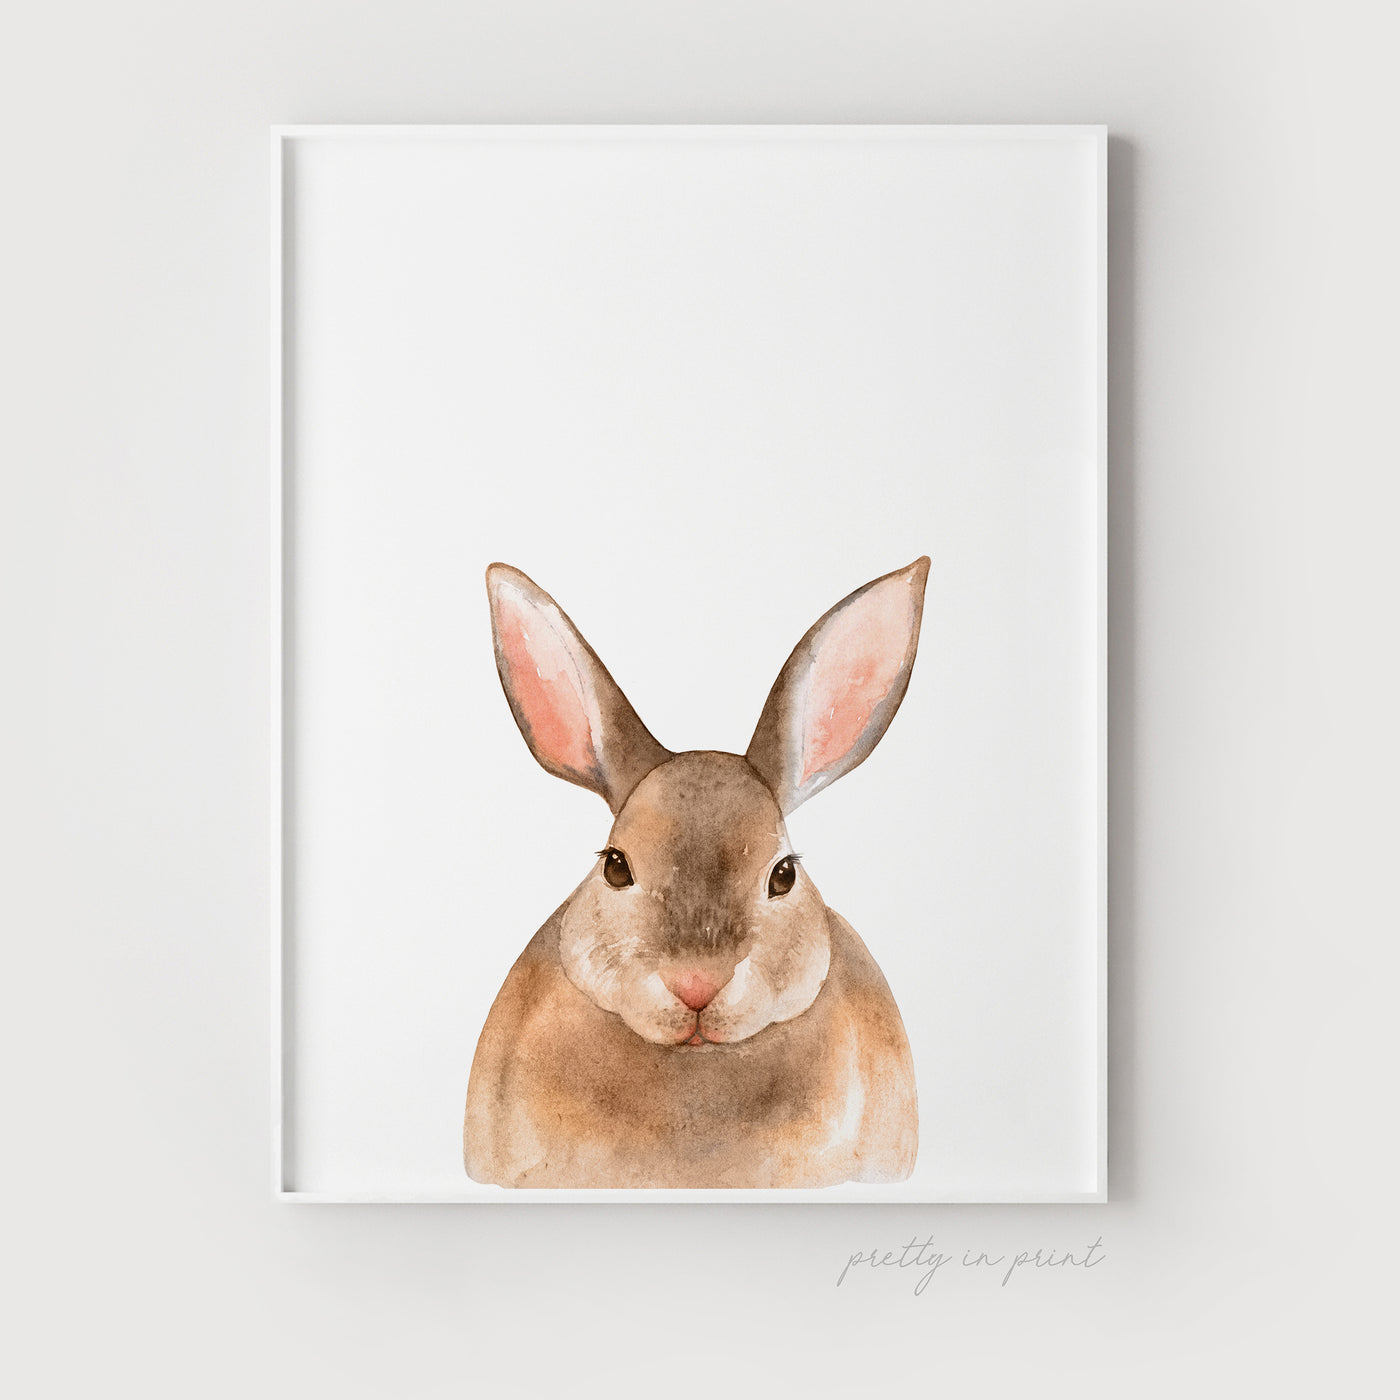 Nursery Rabbit Print - Non-Floral Version - Pretty in Print Art